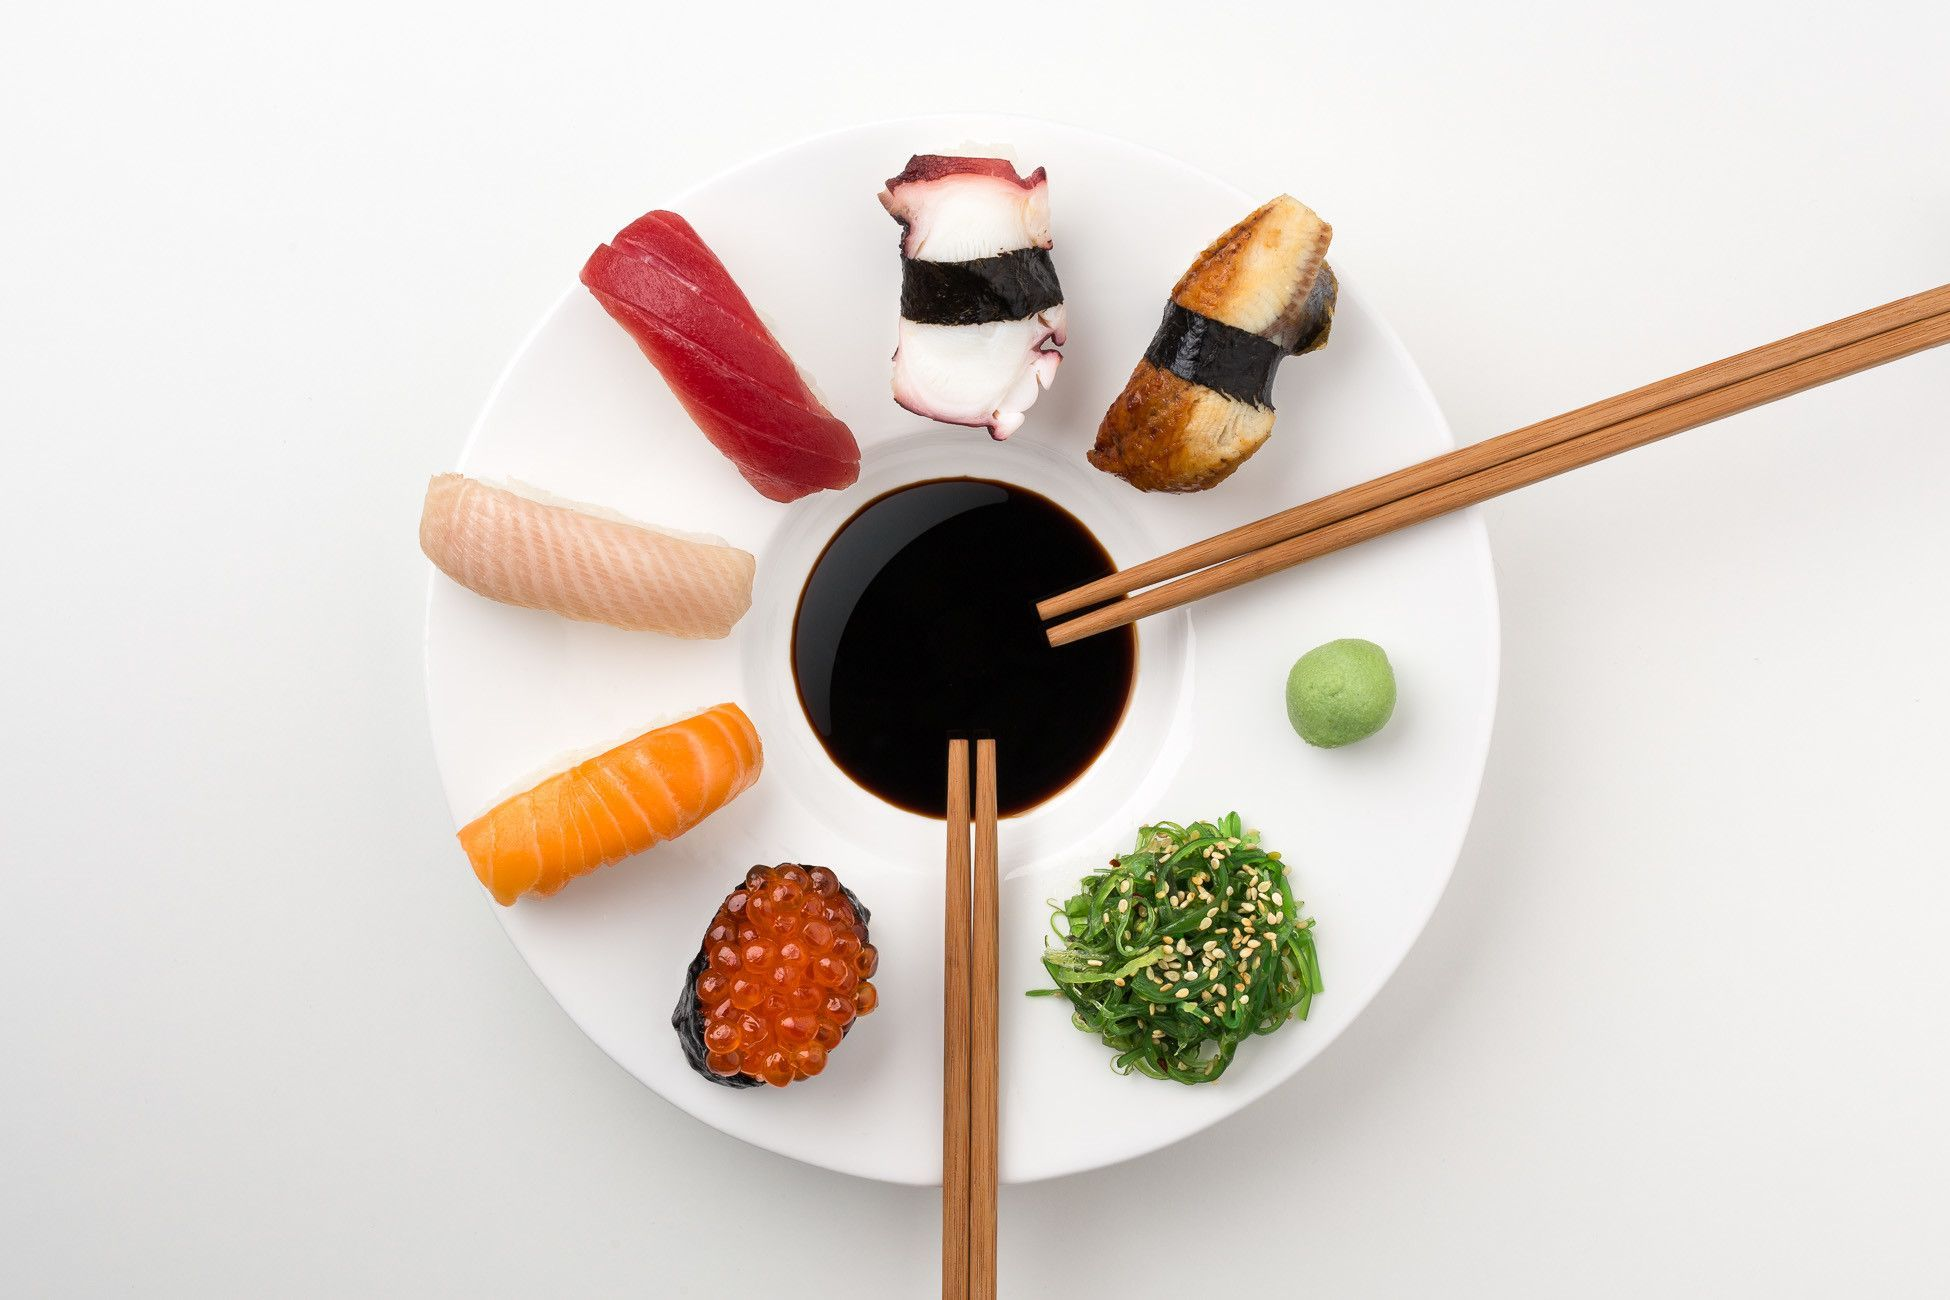 The Sushi Plate 6 Piece Dinnerware Set